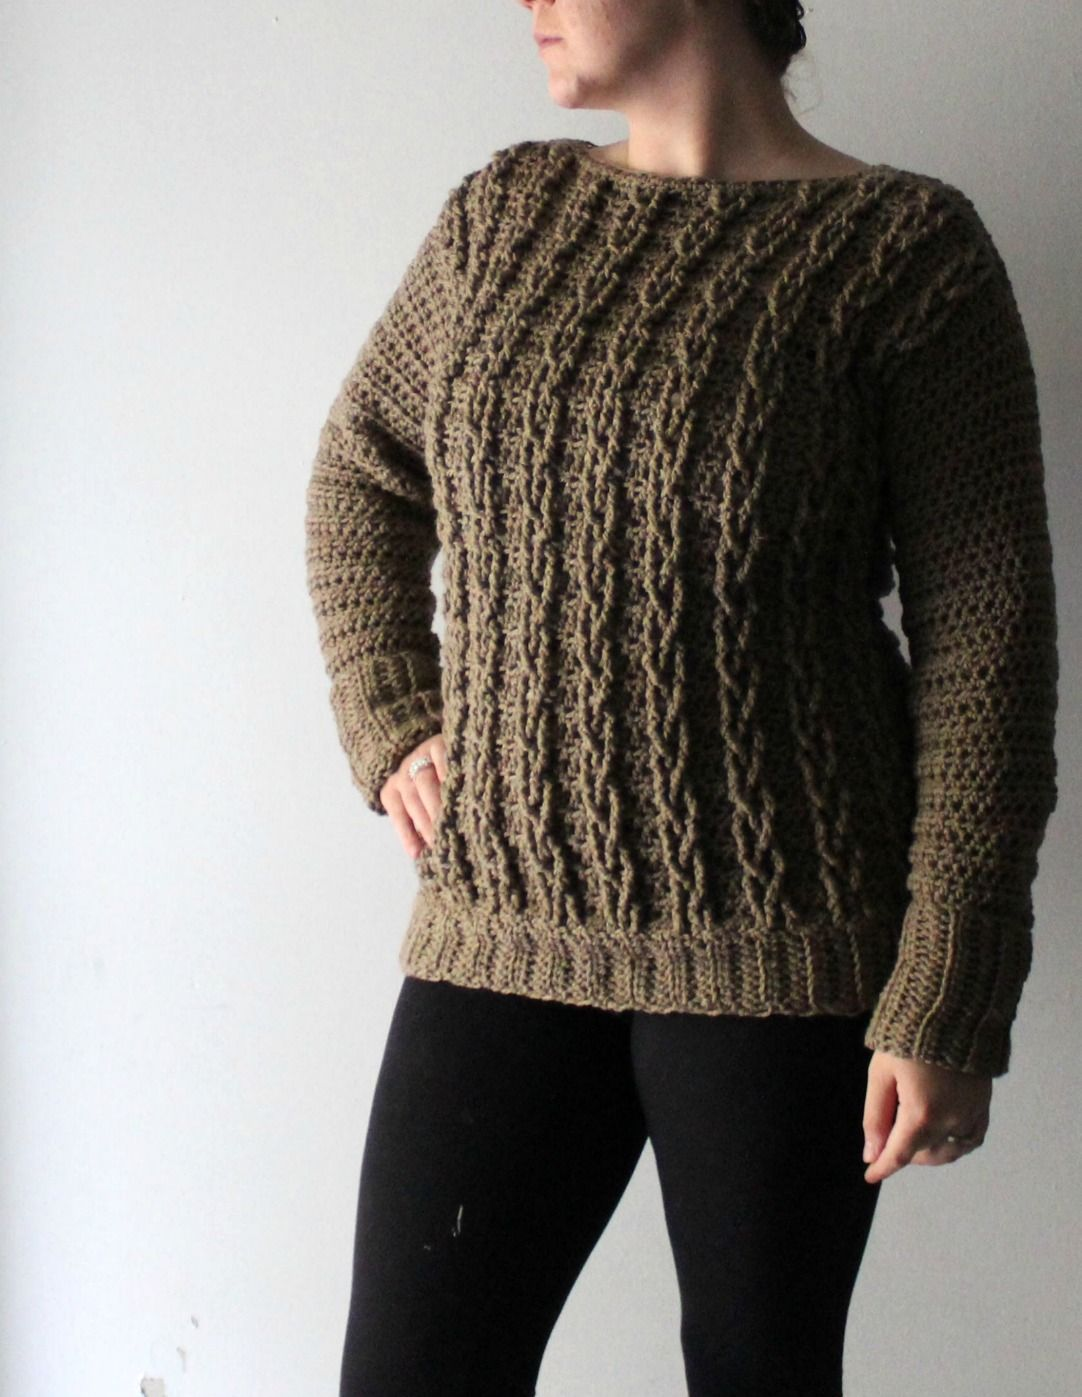 3ee1c8b5bb4841 Have you been dying to make your own sweater  Need a detailed pattern   Check out the crochet cable sweater design by YarnHookNeedles!